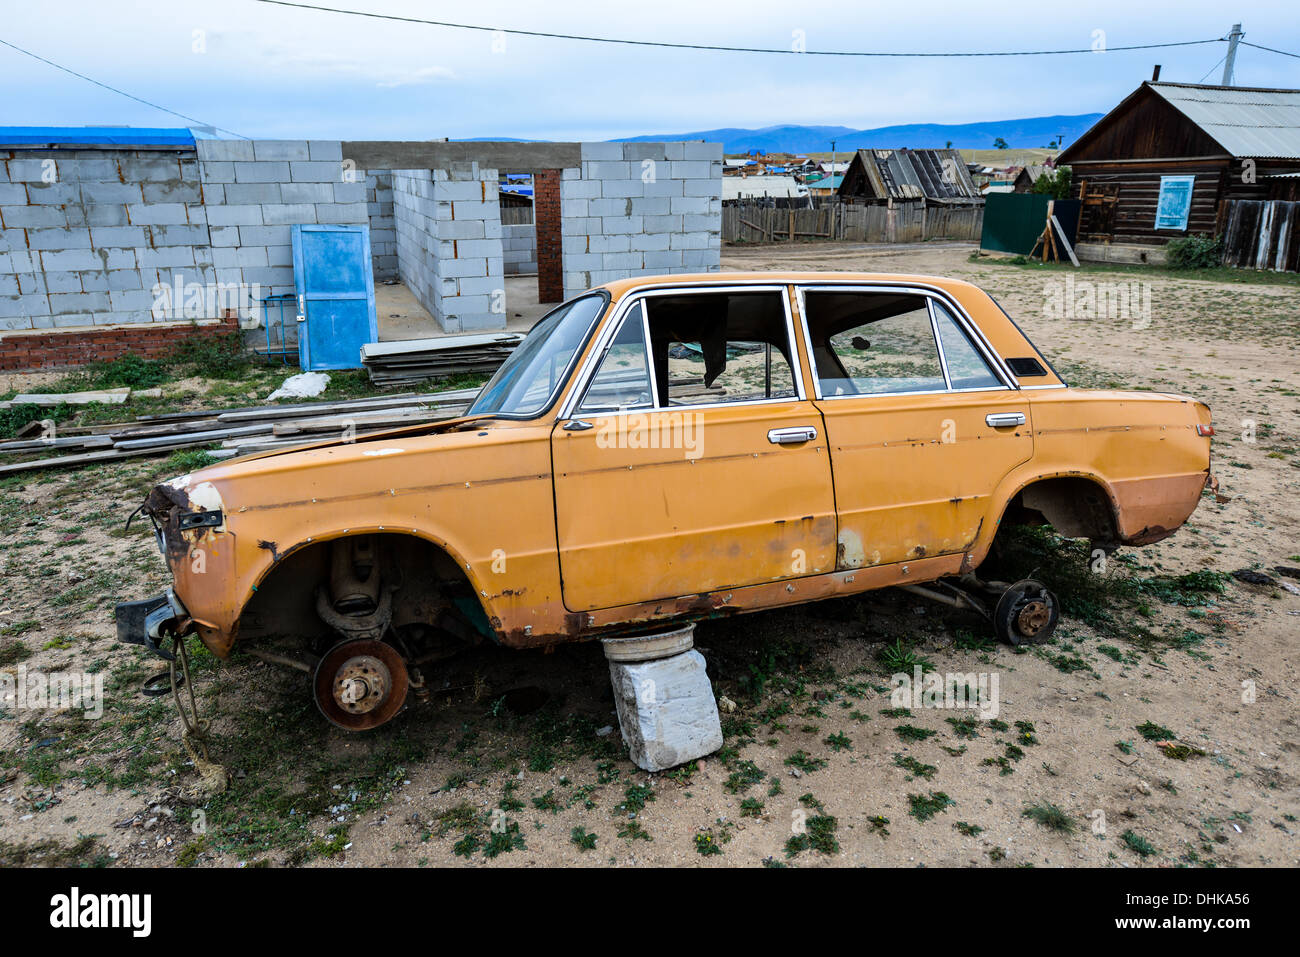 Old Broken Down Russian Car in the town of Khuzir, Lake Baikal, Russia. - Stock Image